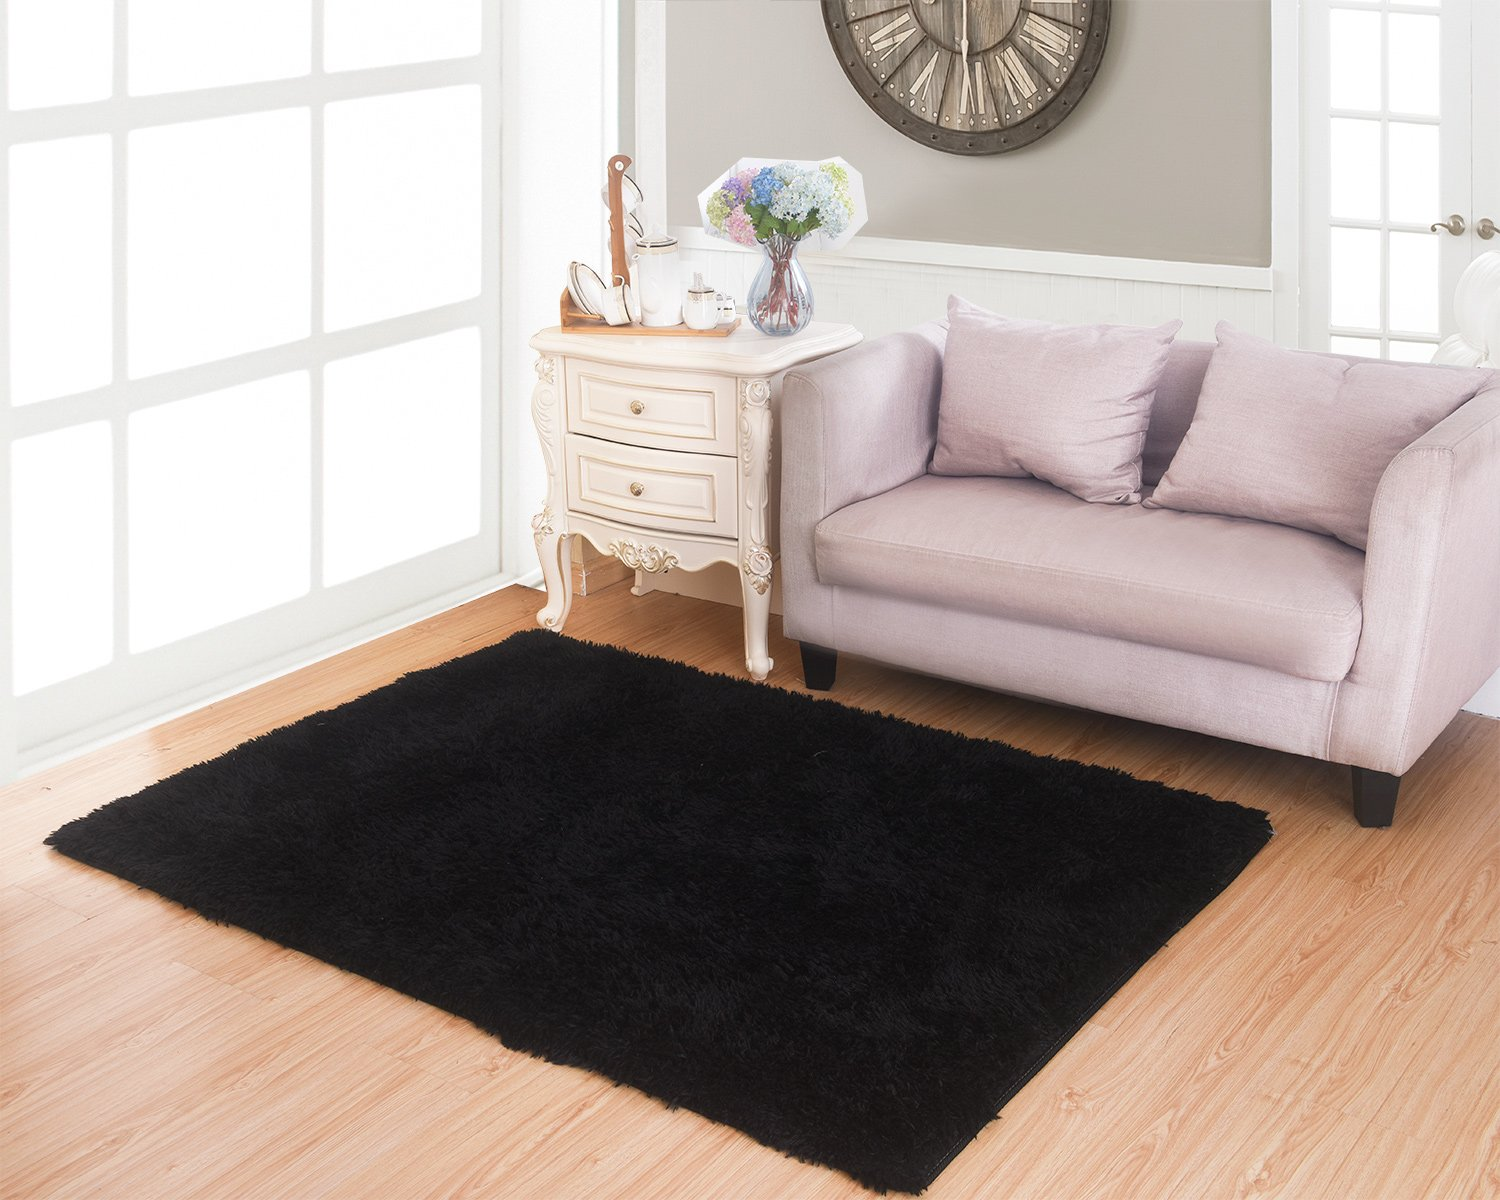 Living Room Carpets Amazoncom Living Room Bedroom Rugs Mbigm Ultra Soft Modern Area